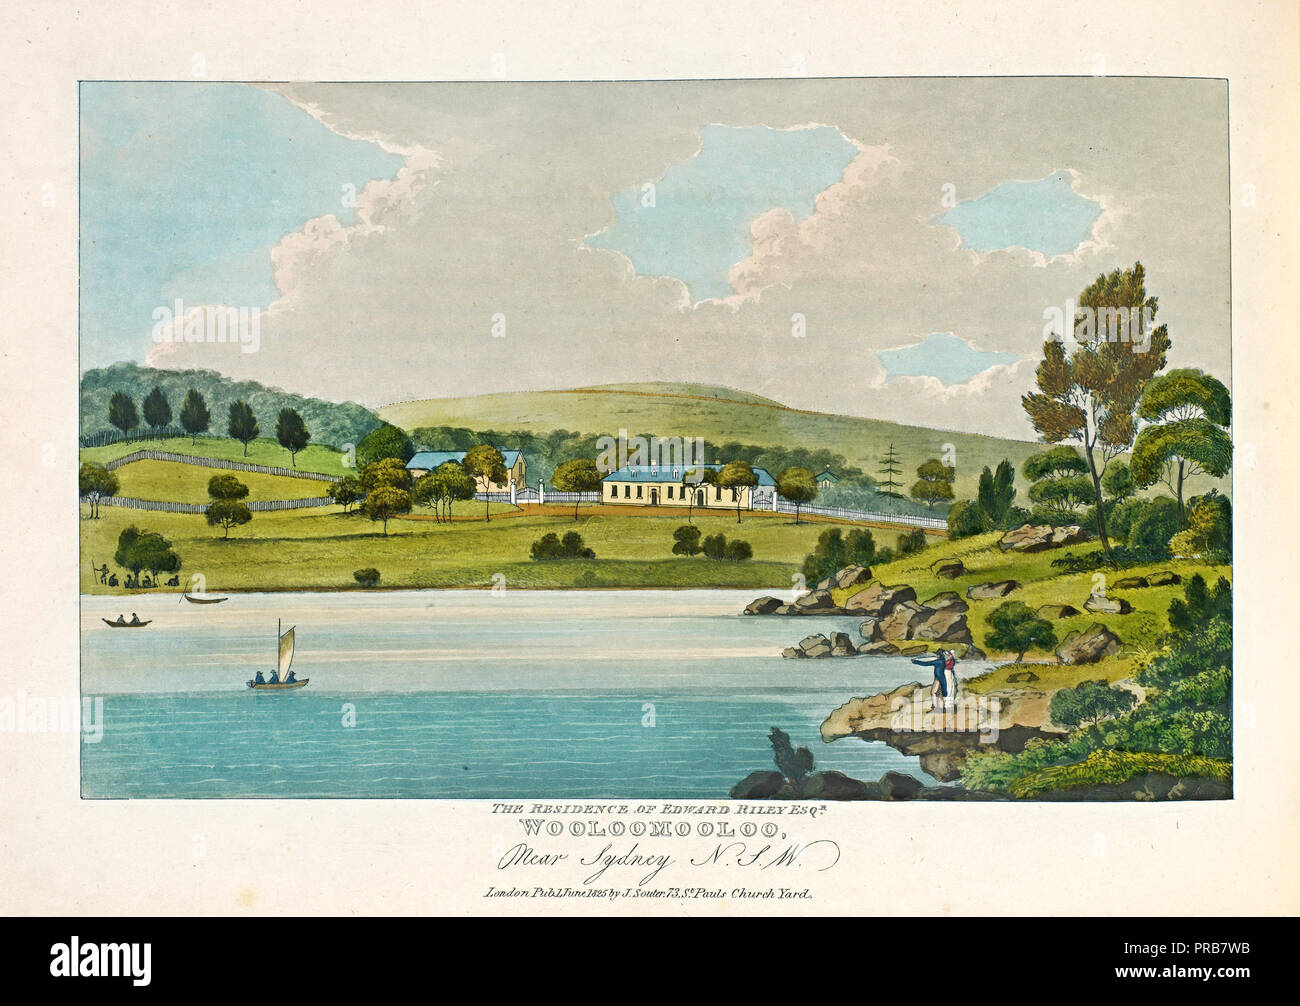 Joseph Lycett, The Residence of Edward Riley Esquire, Wooloomooloo, Near Sydney N. S. W. 1825, Illustrated Books, National Gallery of Victoria, Austra - Stock Image